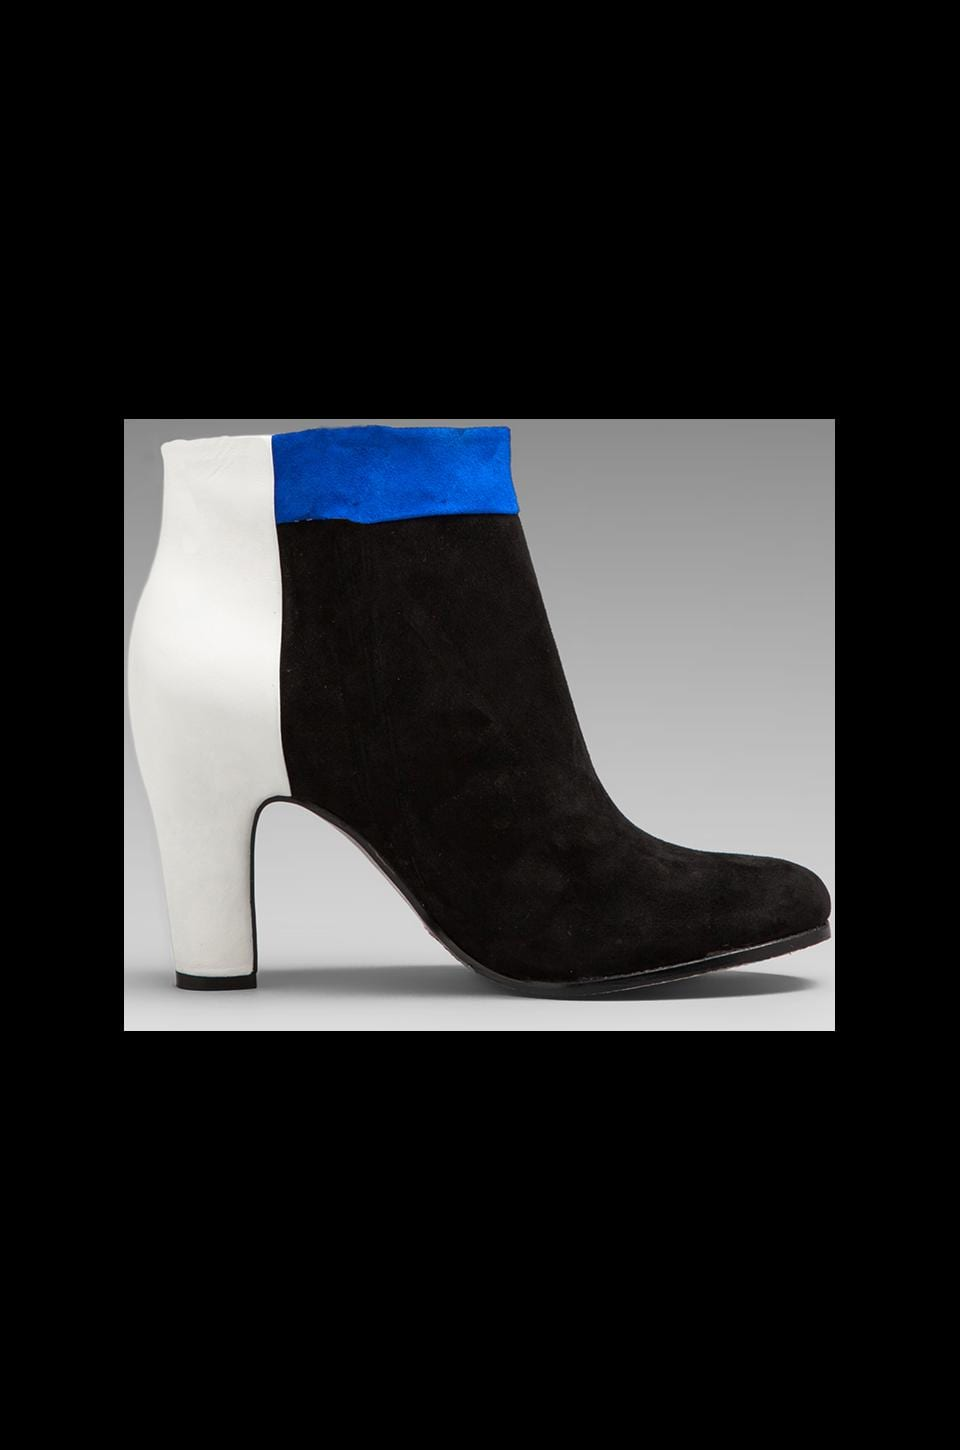 Sam Edelman Shay Bootie in Black/Bright Blue/Snow White